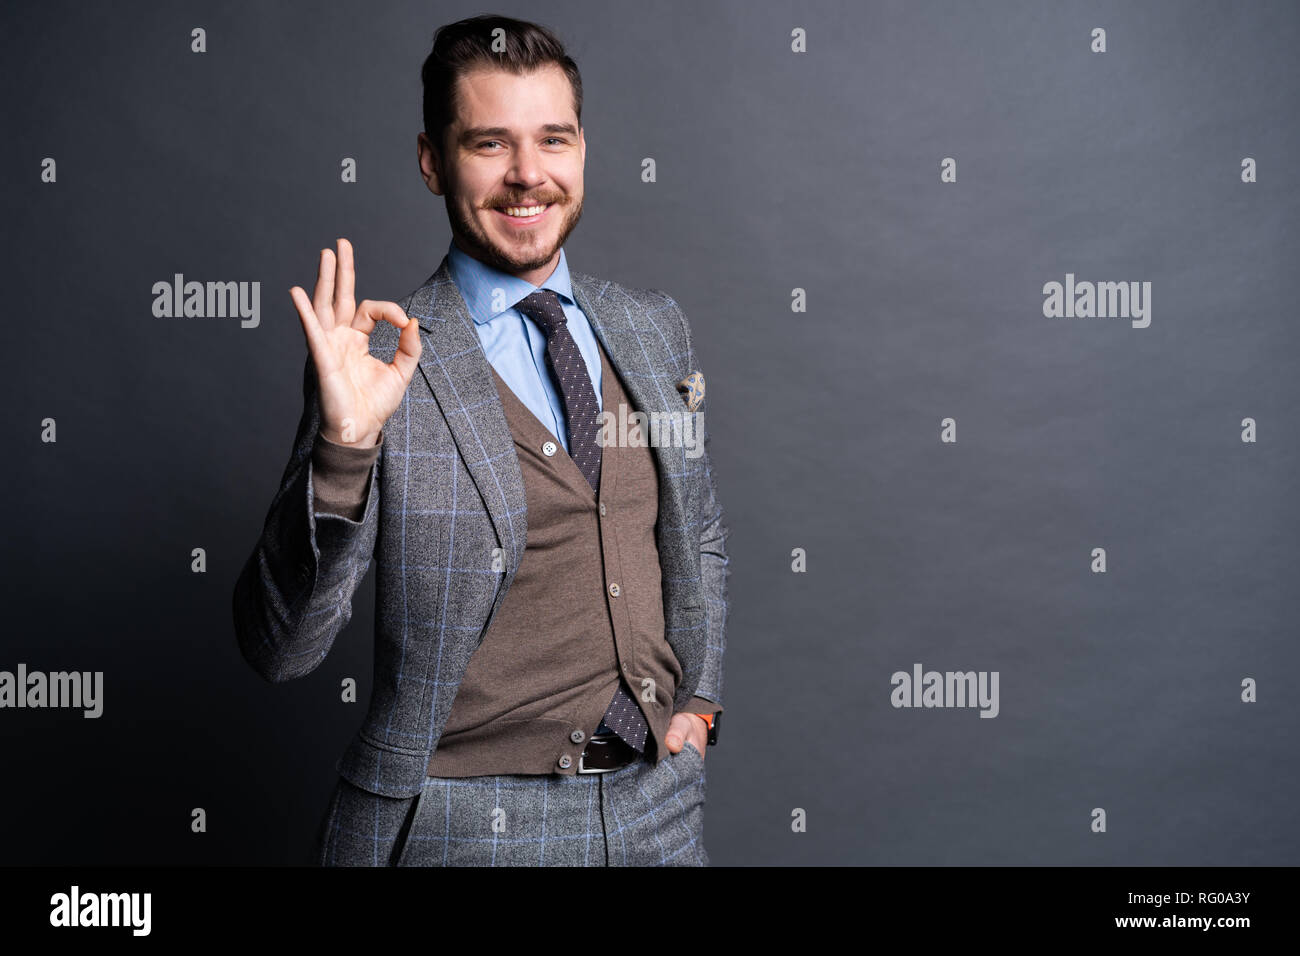 Portrait of excited satisfied cheerful confident positive handsome demonstrating thumbs-up pointing up isolated on gray background. - Stock Image